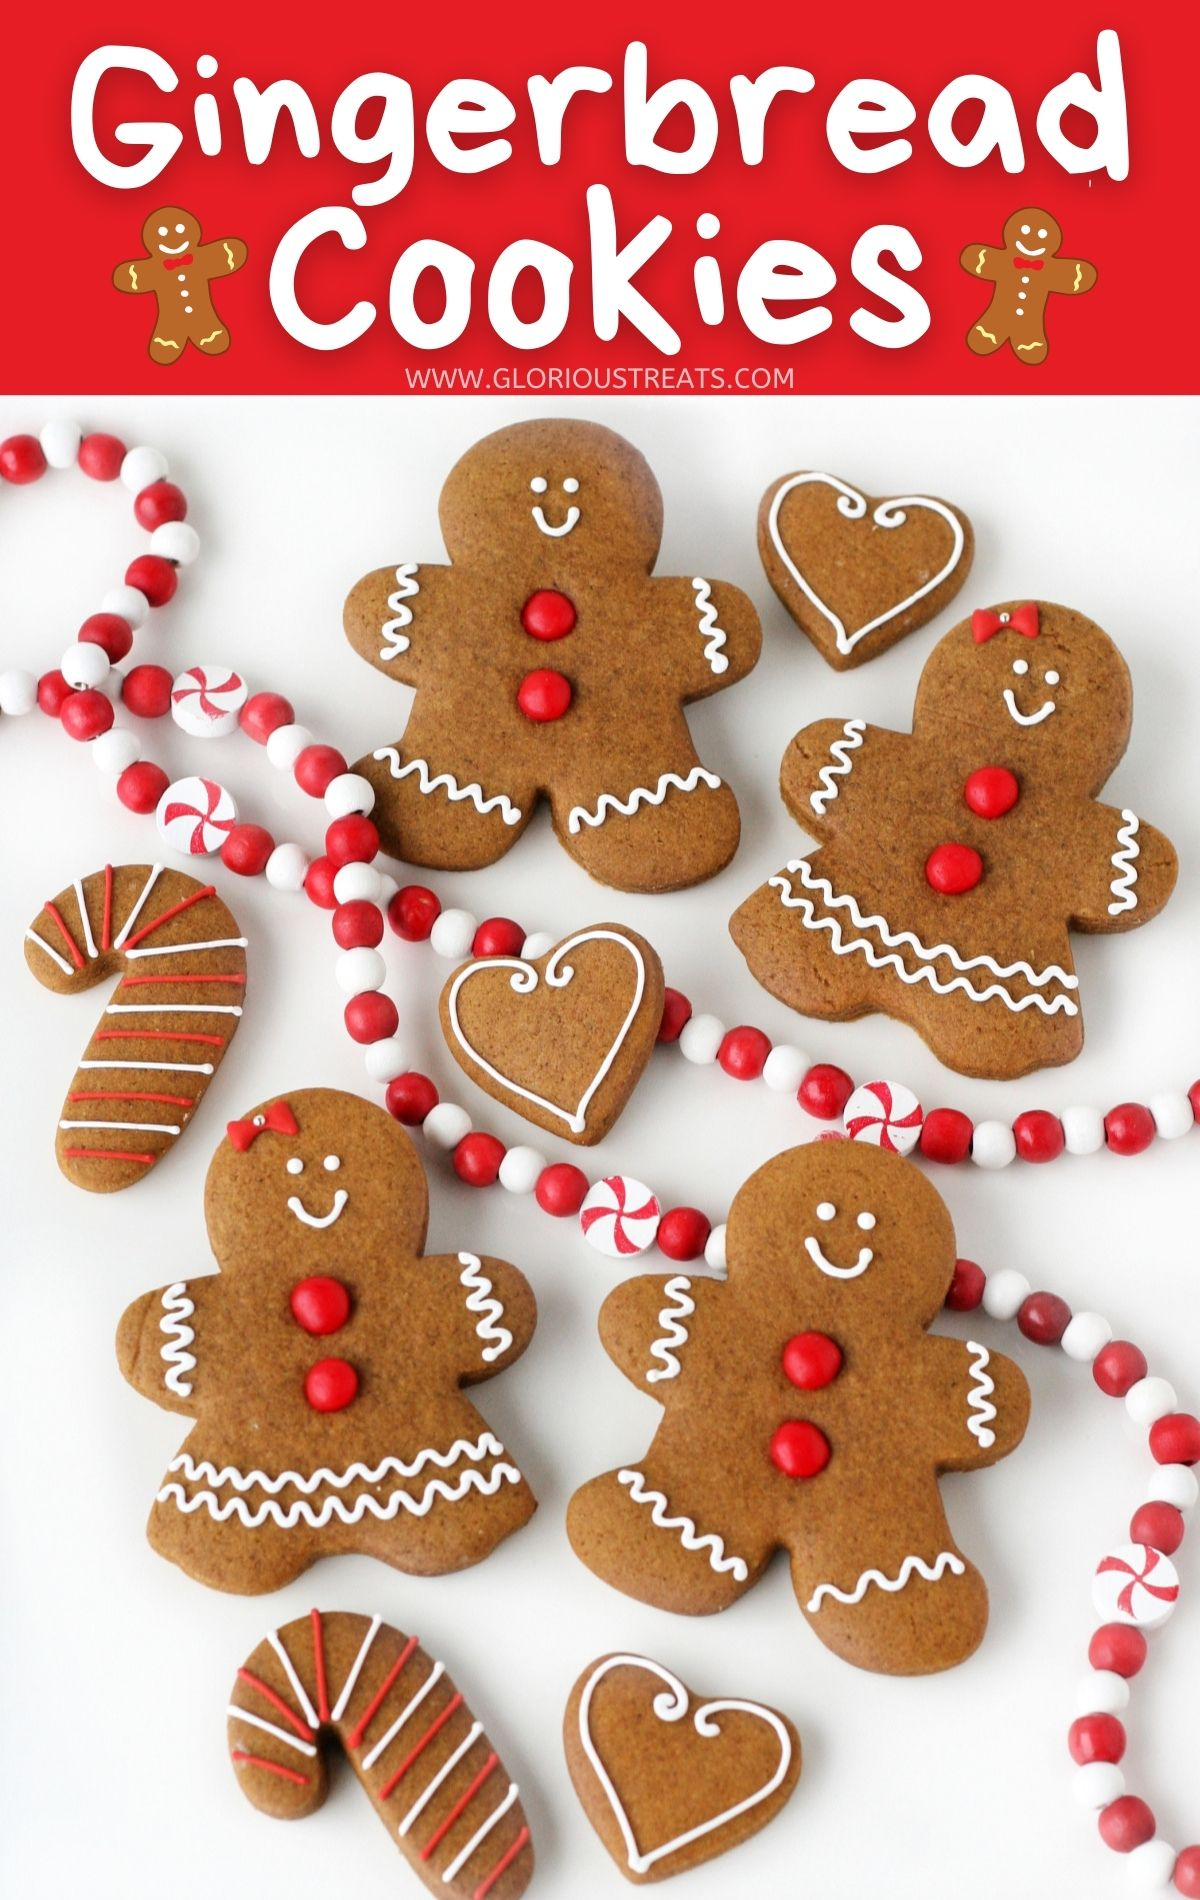 decorated gingerbread cookies with red garland and title and color block overlay at top of image